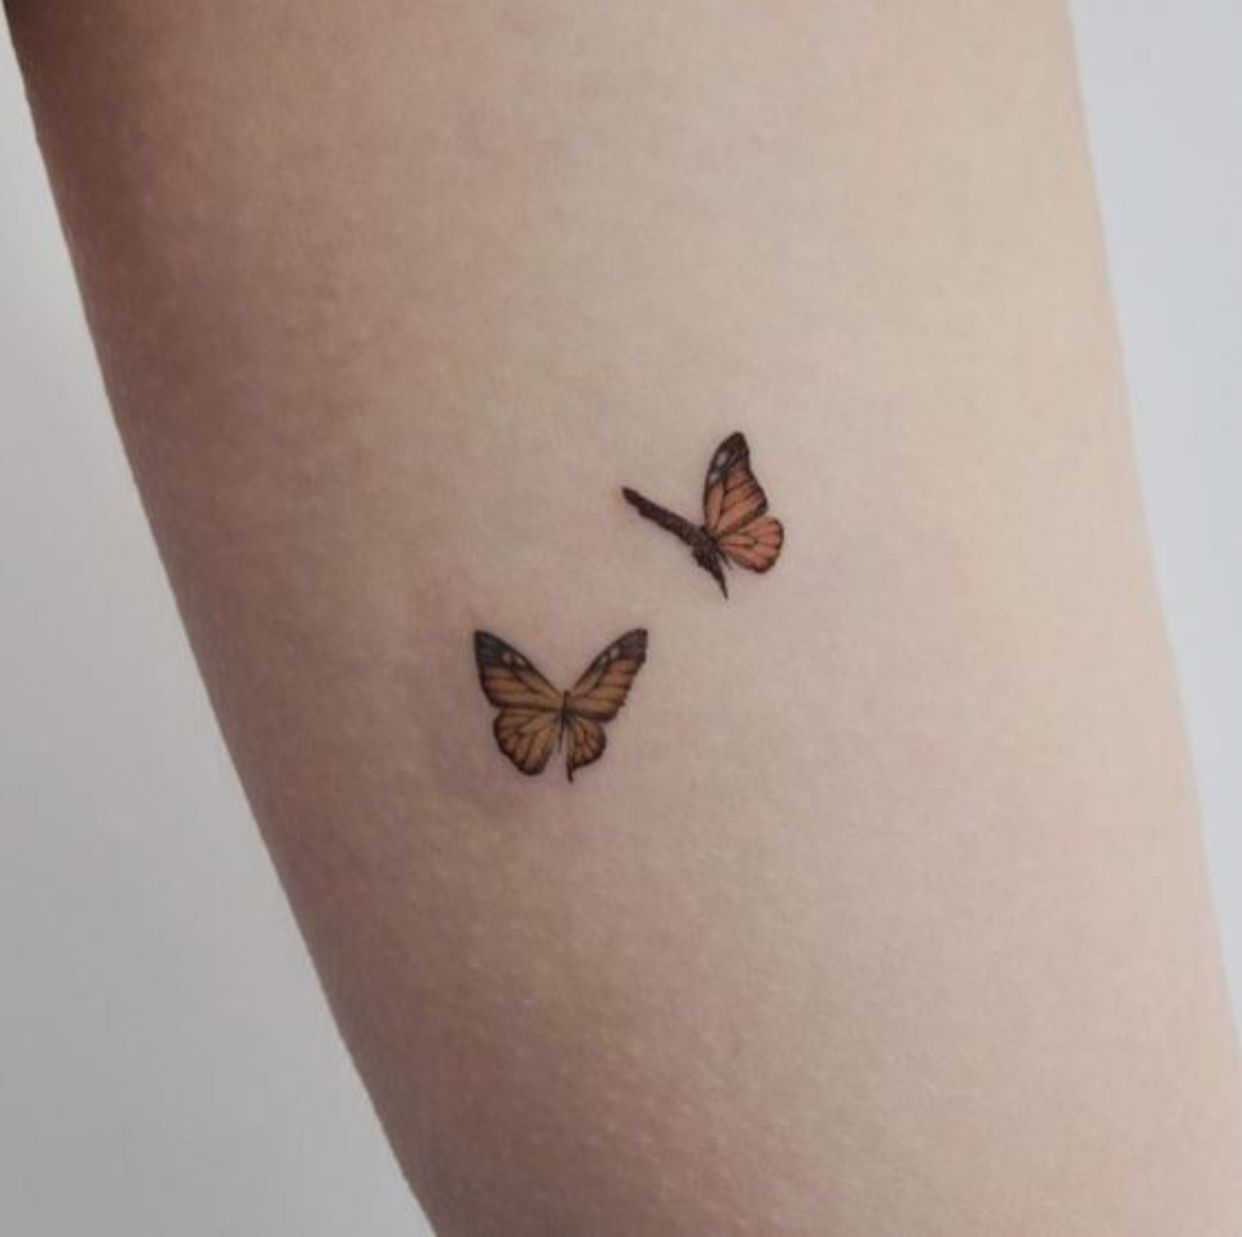 Delicate Butterfly Tattoo Tiny Butterfly Tattoo Butterfly Tattoo Small Butterfly Tattoo